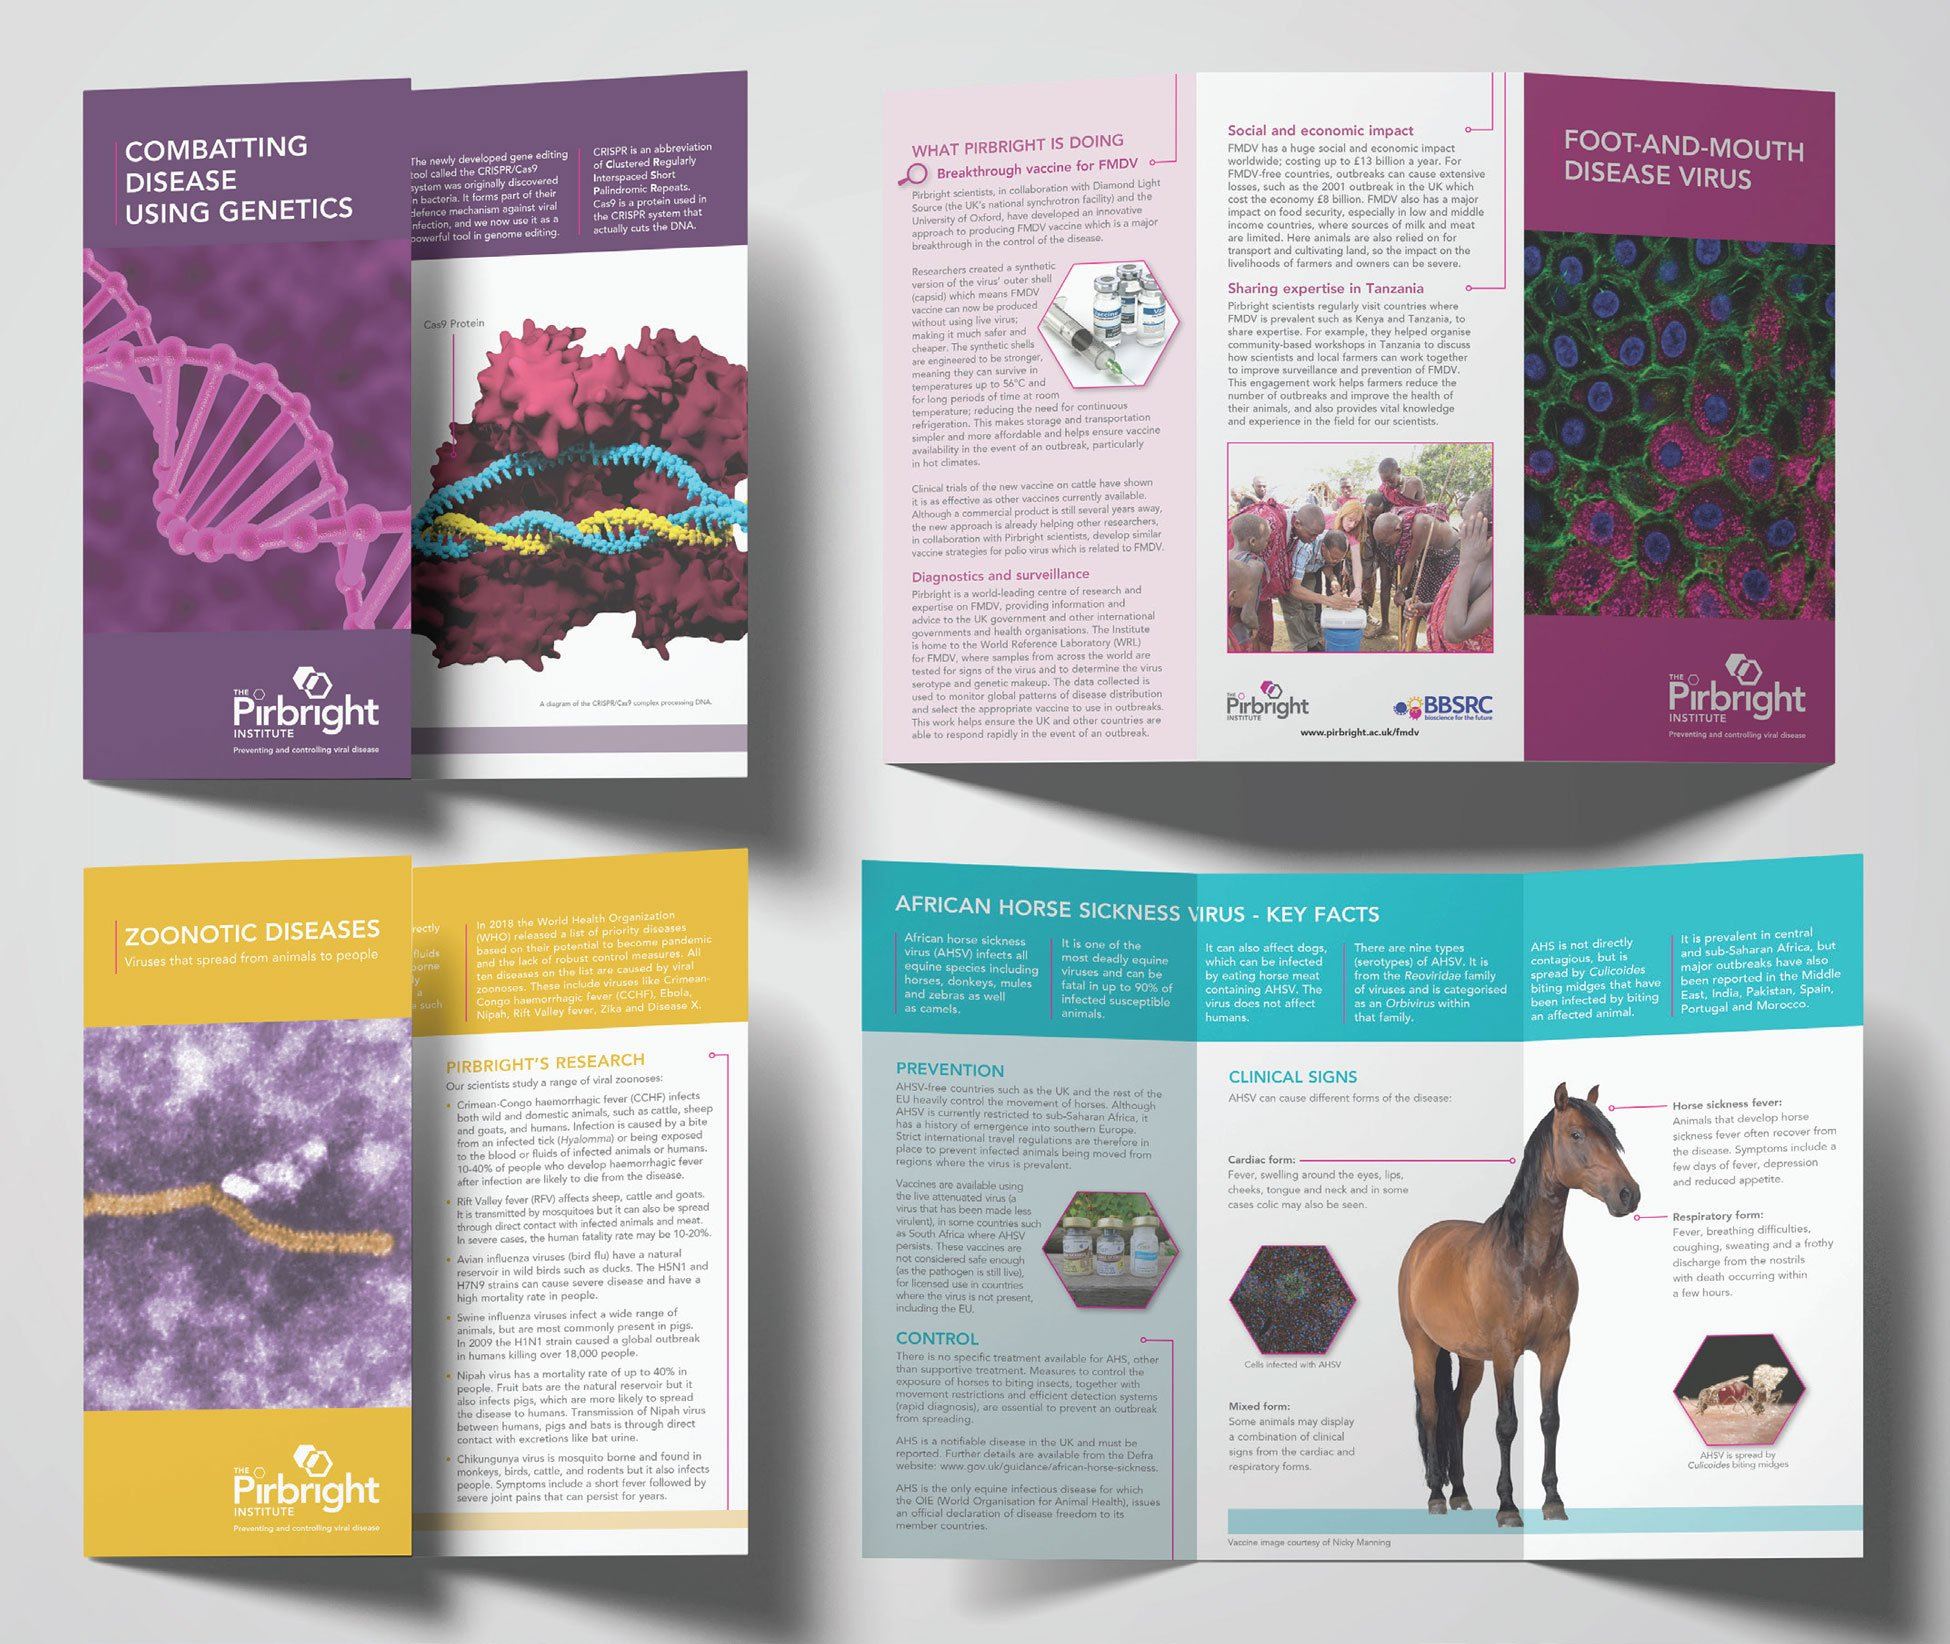 Pirbright Institute - Leaflets design and printing